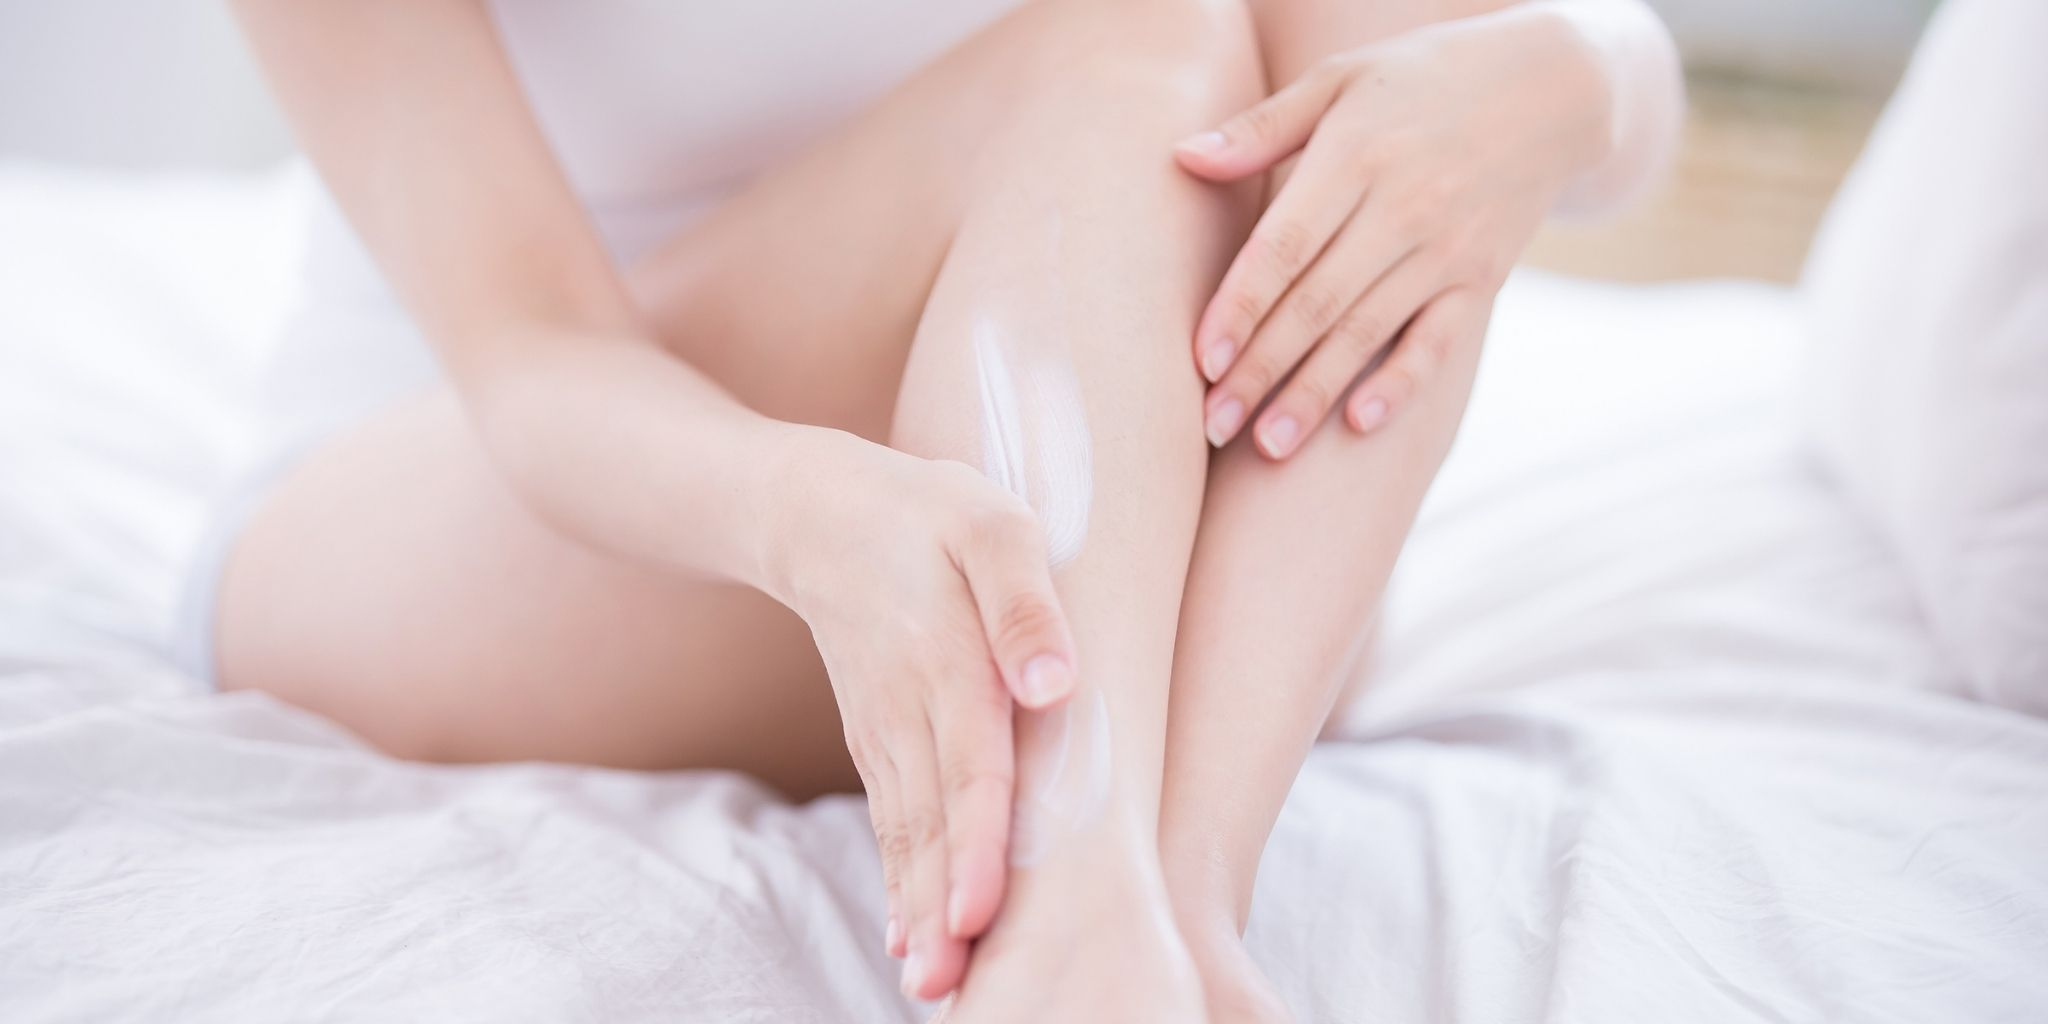 What is emollient cream, and its benefit?